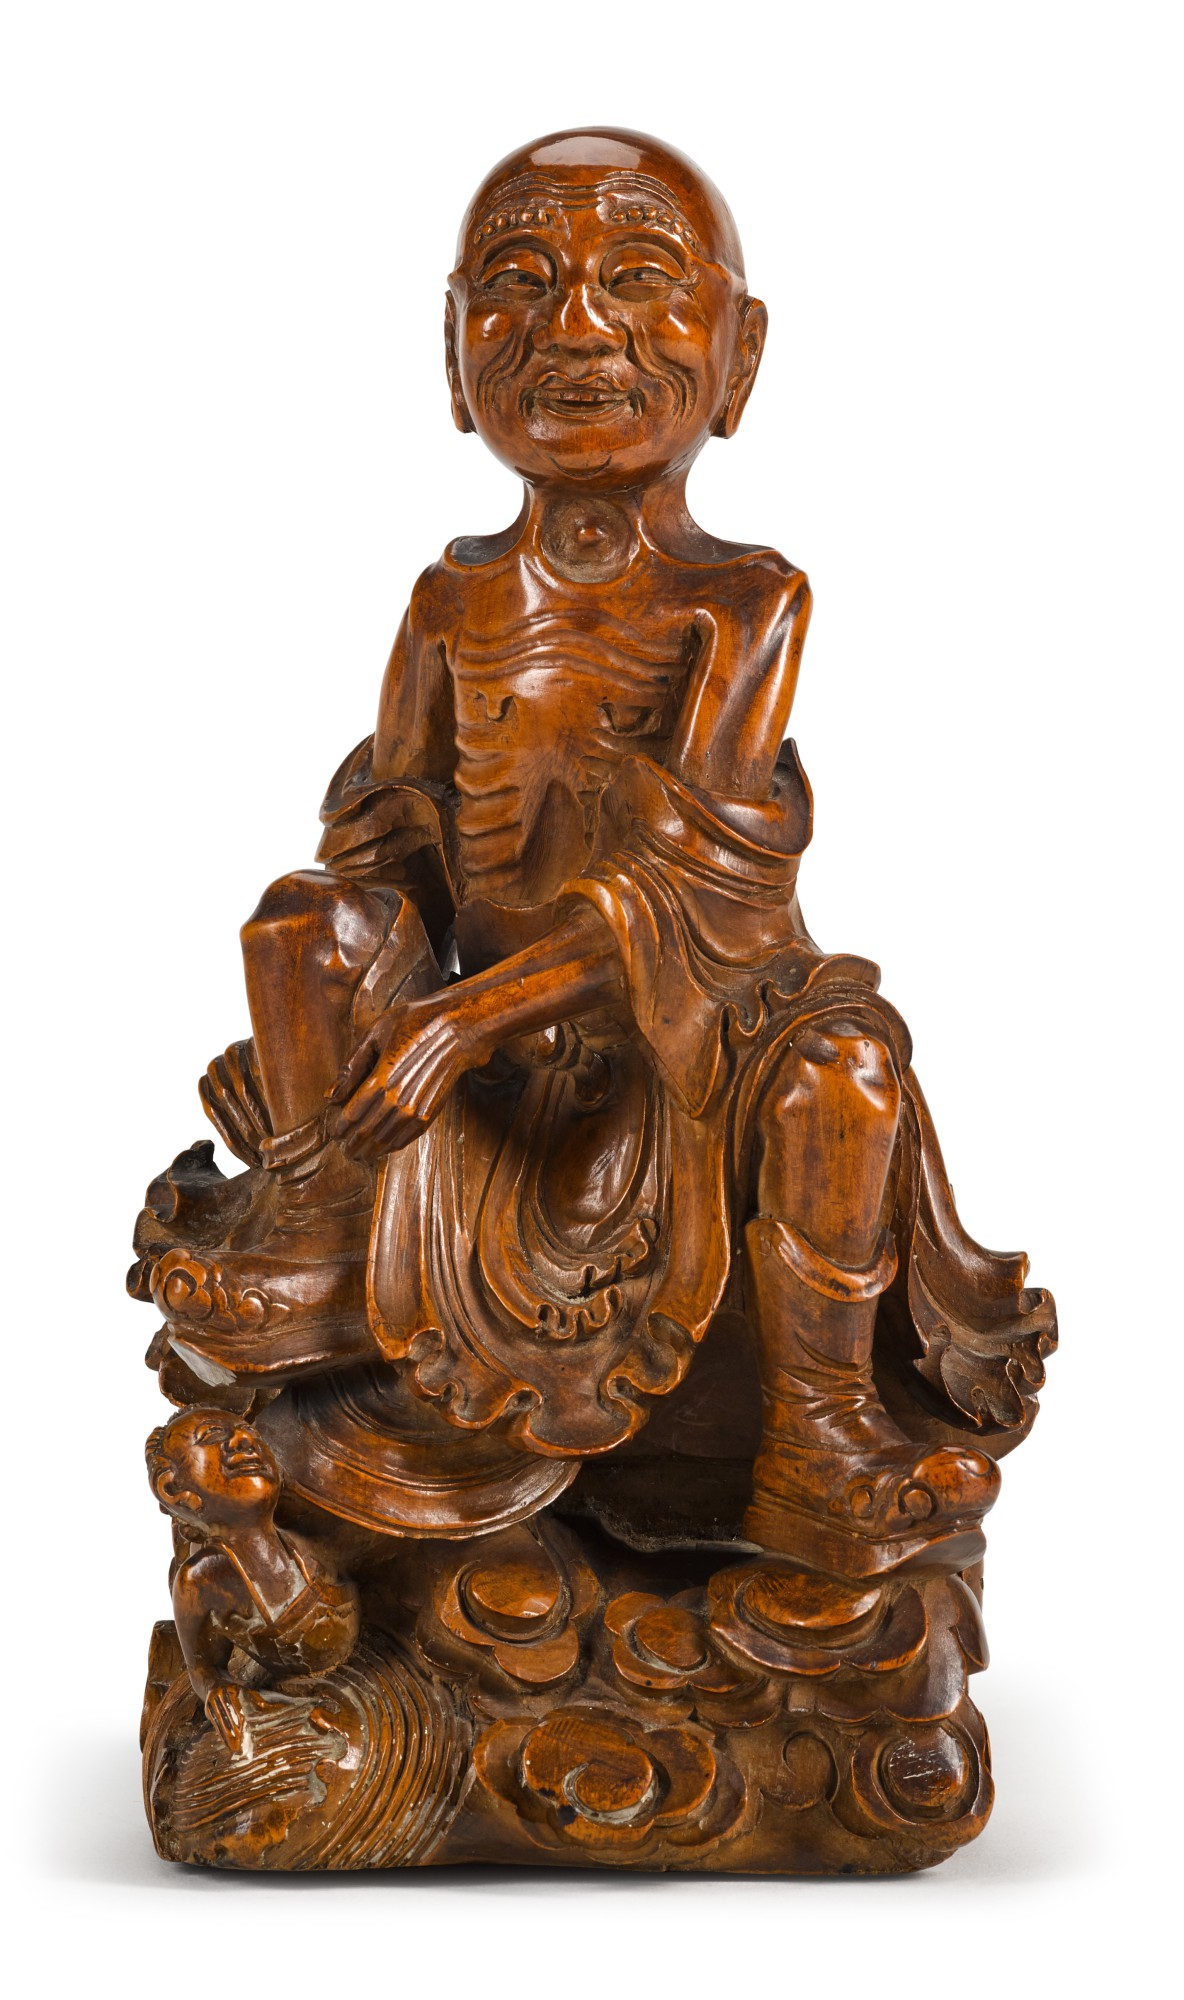 A BOXWOOD CARVING OF A LUOHAN | 19TH/20TH CENTURY | 十九/二十世紀 黃楊木雕羅漢坐像